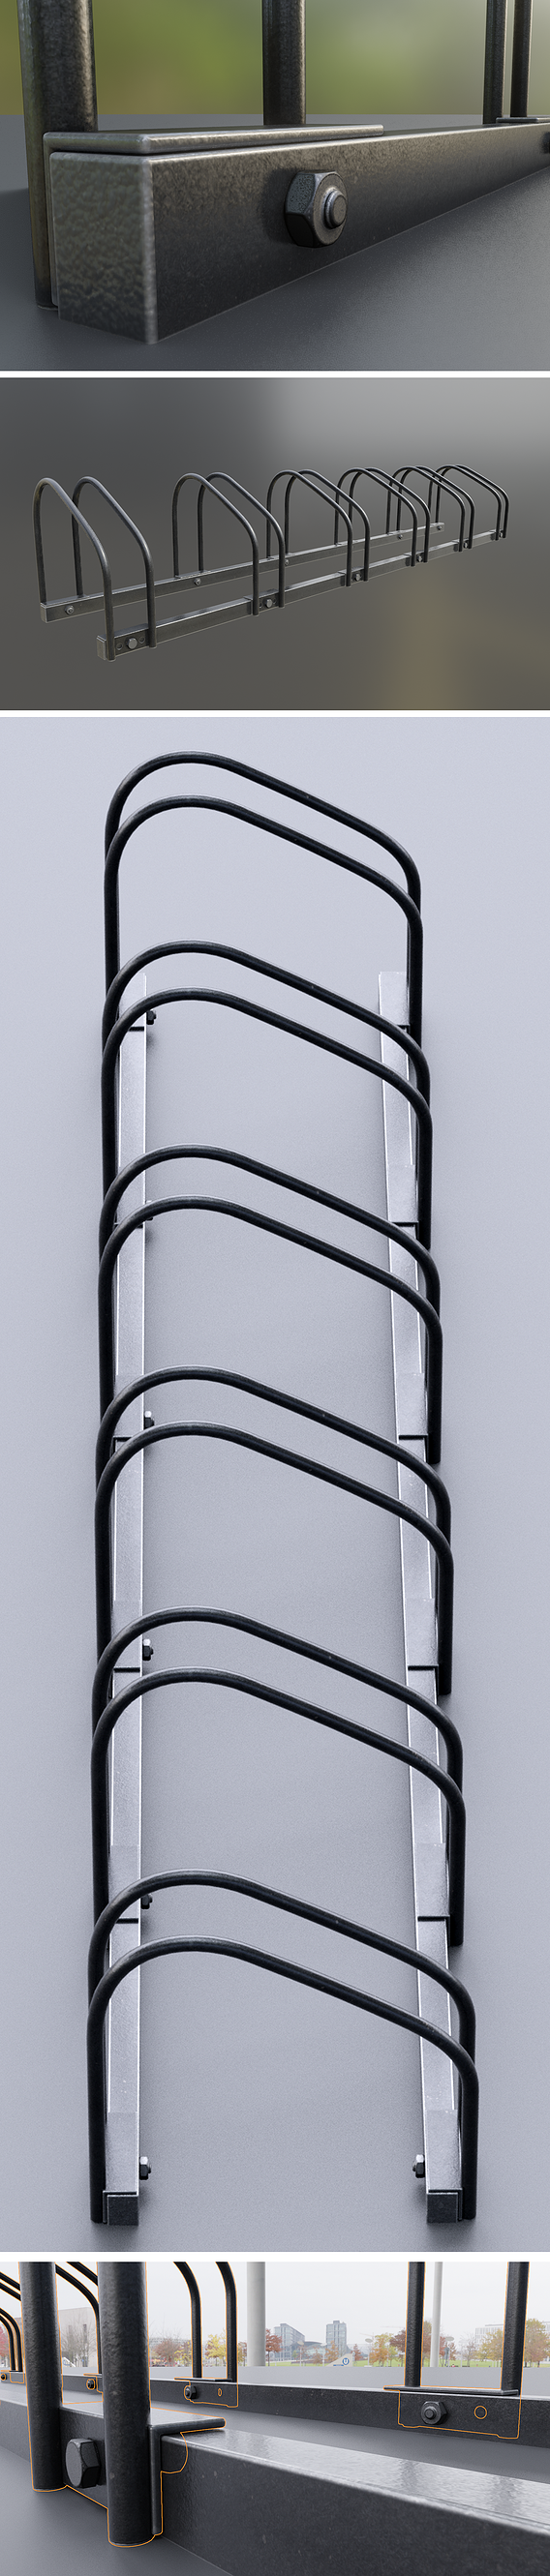 Bicycle Stand [4] (High-Poly Version)